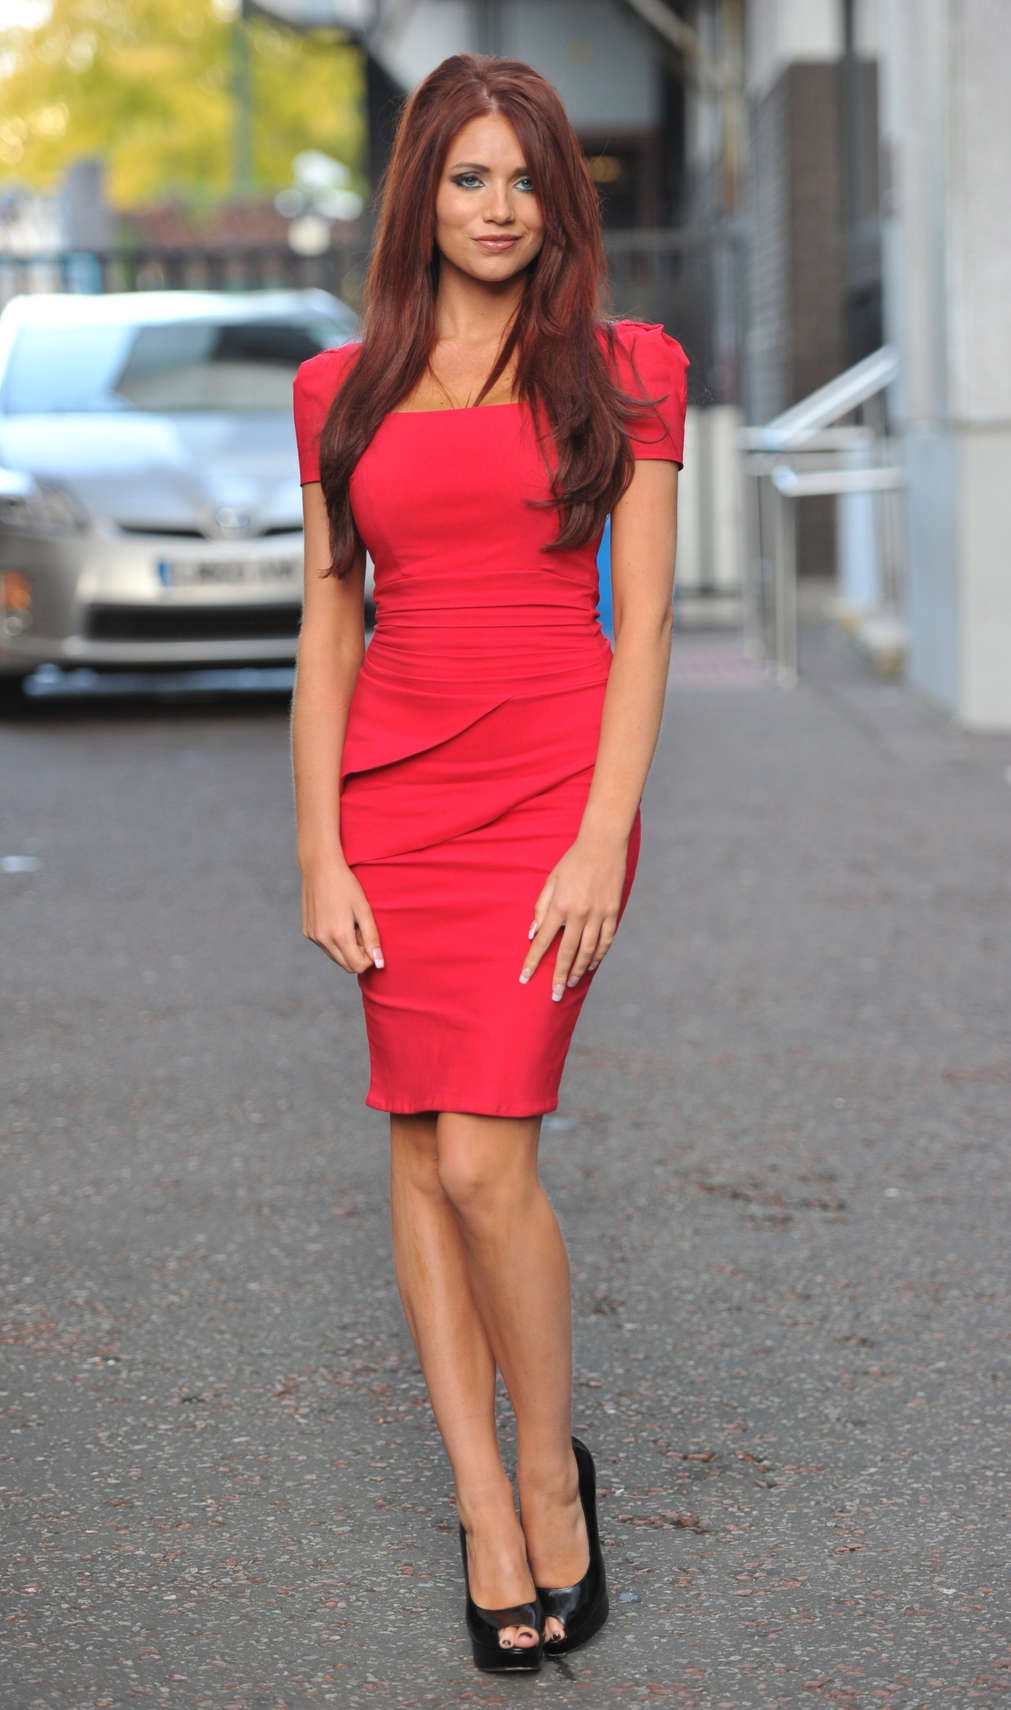 9d2f67fabdc Amy Childs Hot In Red Dress in London-09 – GotCeleb